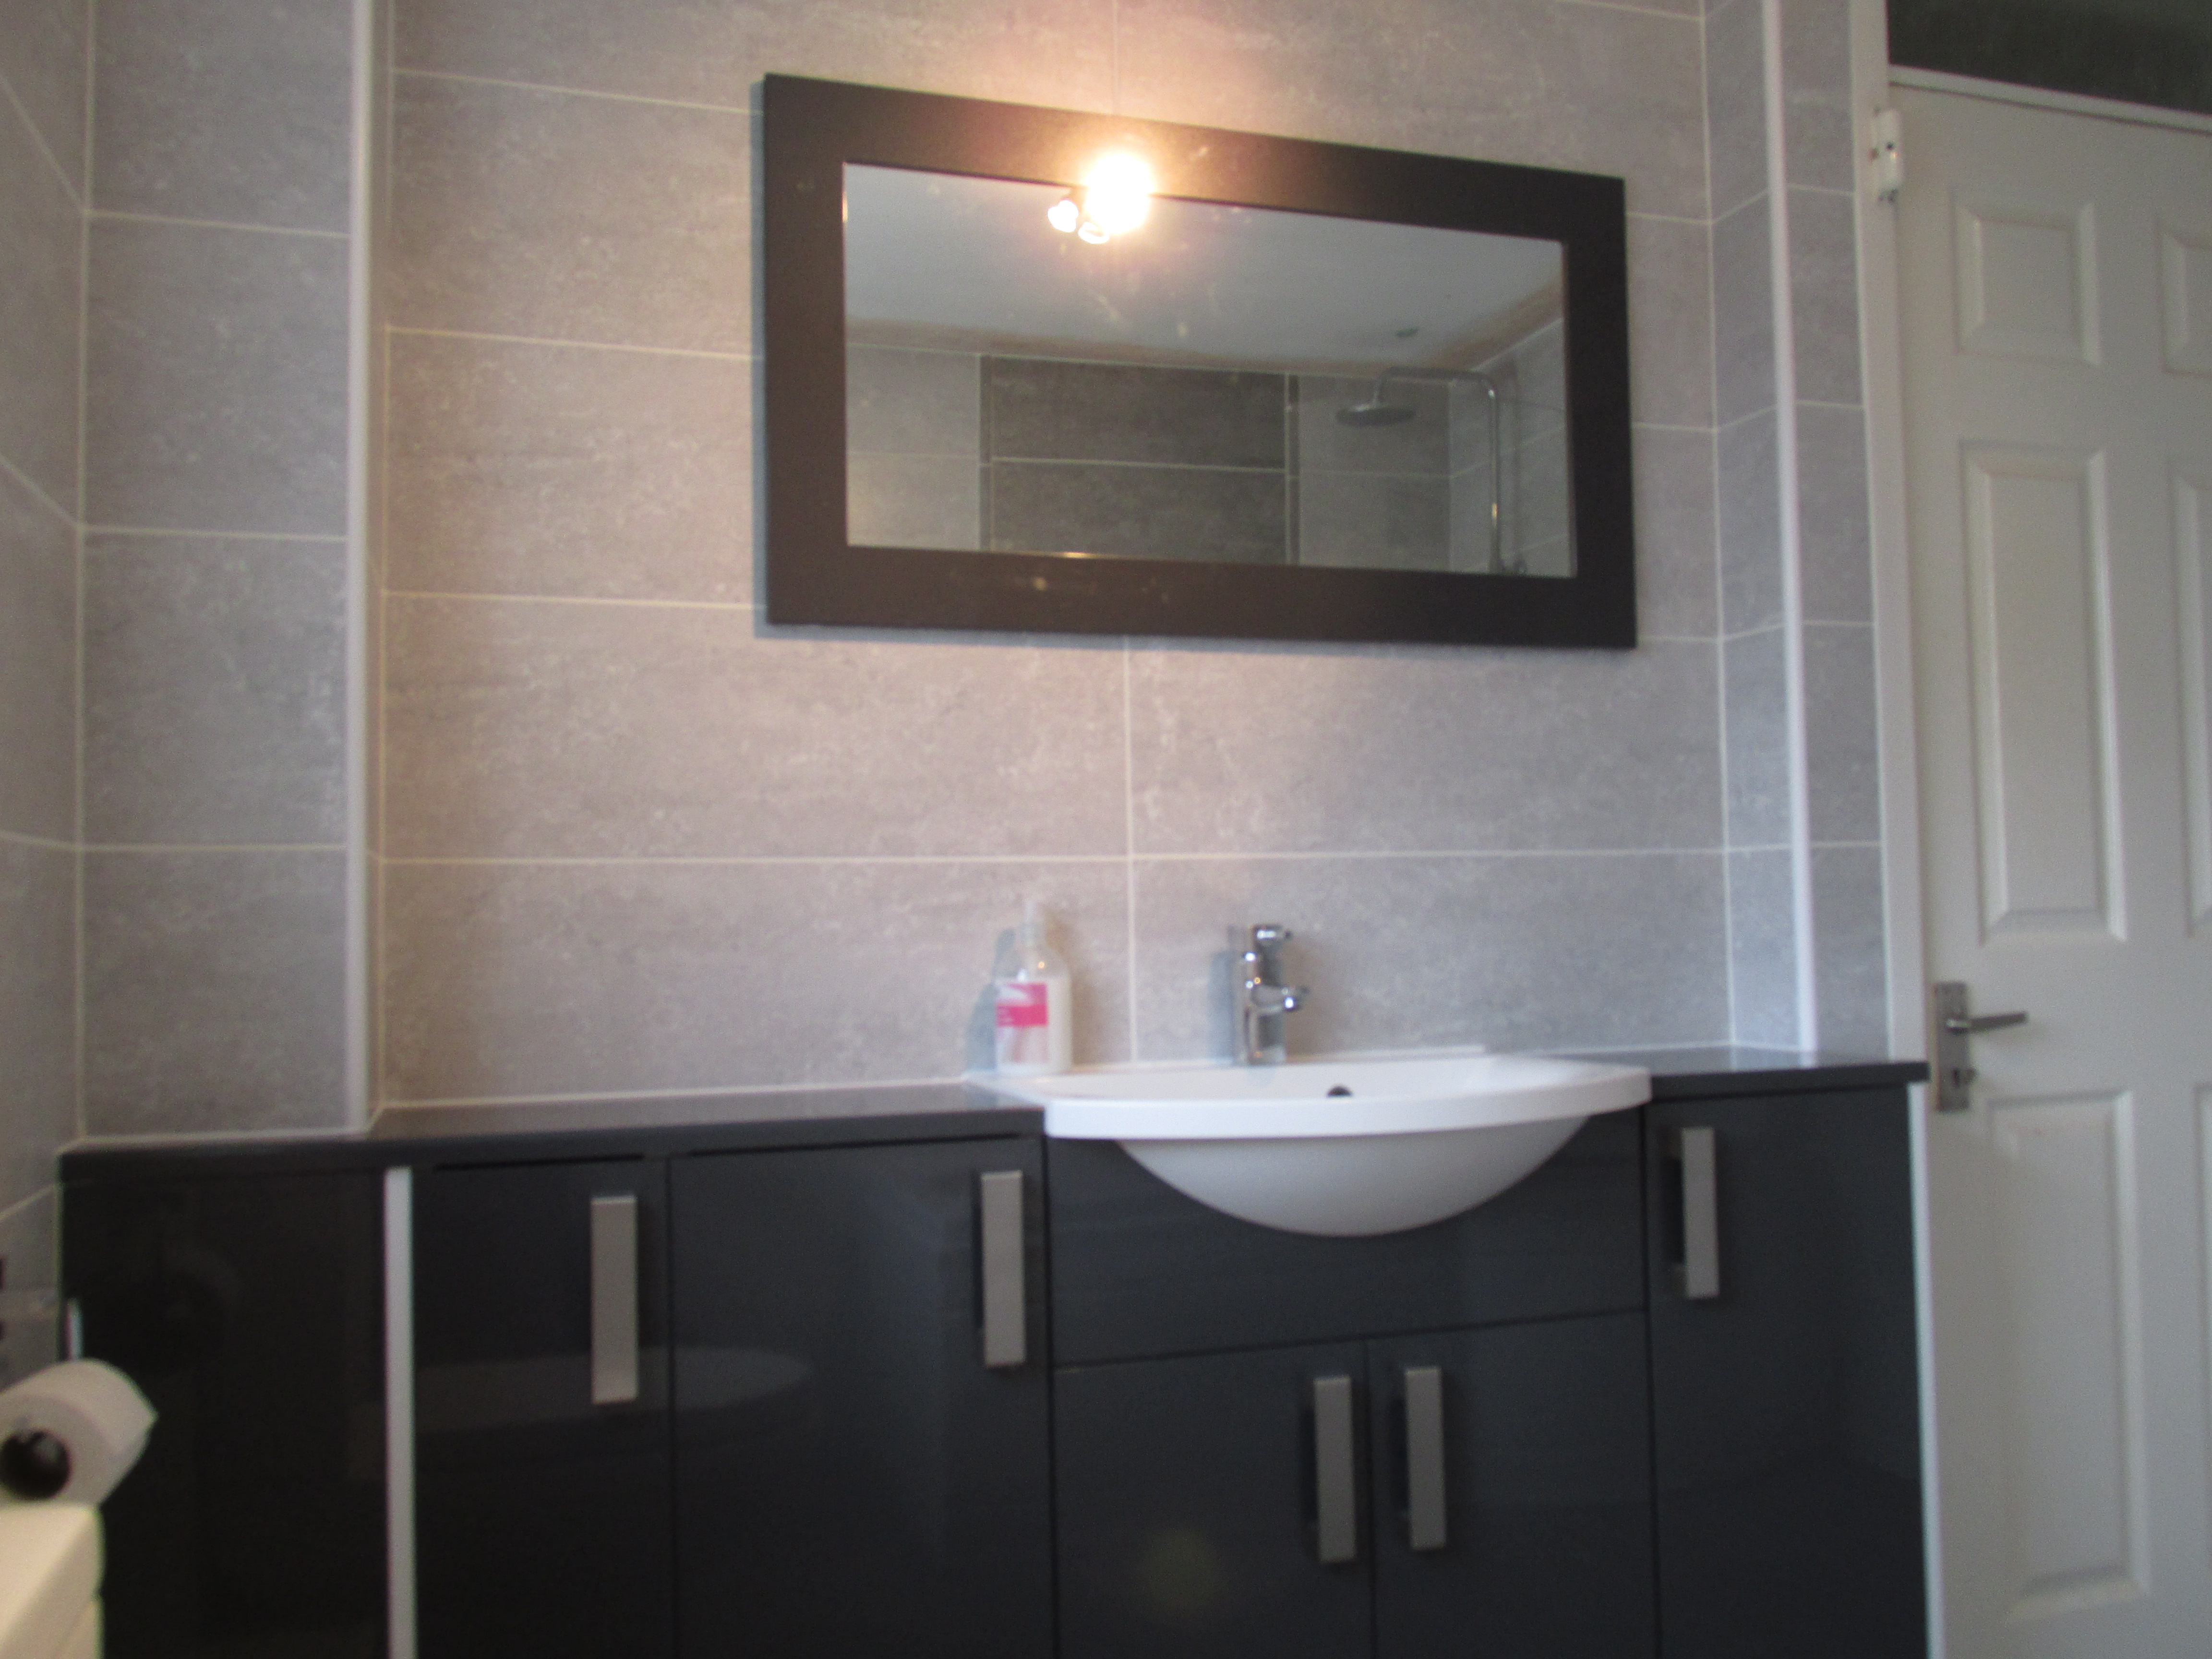 bathroom fittings why are they important. Mirrors Can Really Open Up The Space, They Are Also An Important Feature To Consider At Design Stage. If You Would Like Your Bathroom Include Fittings Why T